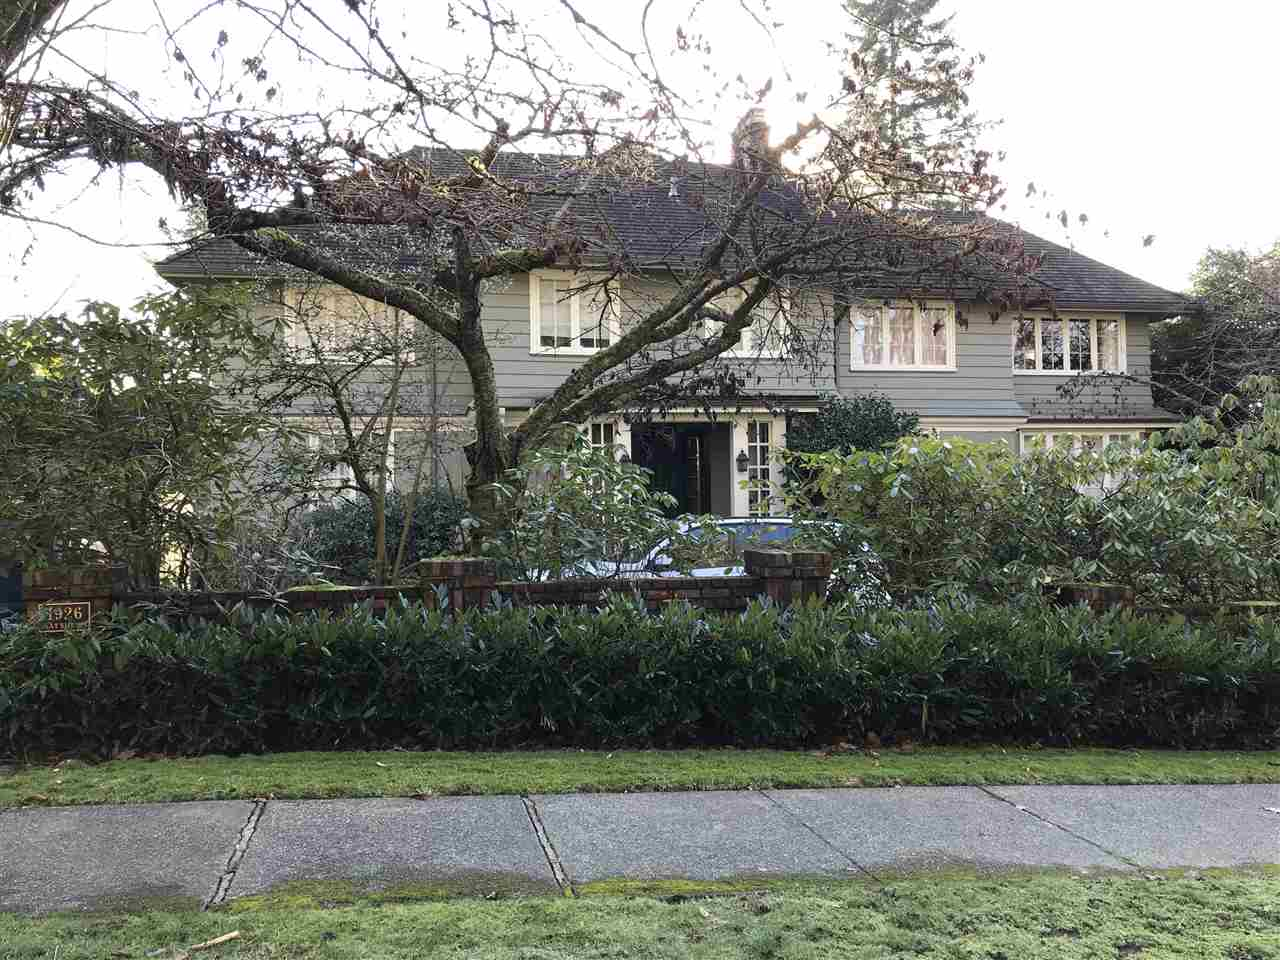 Prestige first Shaughnessy location, this gorgeous 1930's Georgian styled house will be your dream-come-true home. Very well maintained park like garden, circular front driveway, 5 spacious bedrooms, south facing patio and beautiful landscaped backyard. Vancouver's most sought after neighbourhood with school catchment Shaughnessy Elementary, Princes of Wales, York House and Little Flower. Private viewing by appointment with 24 hours notice.